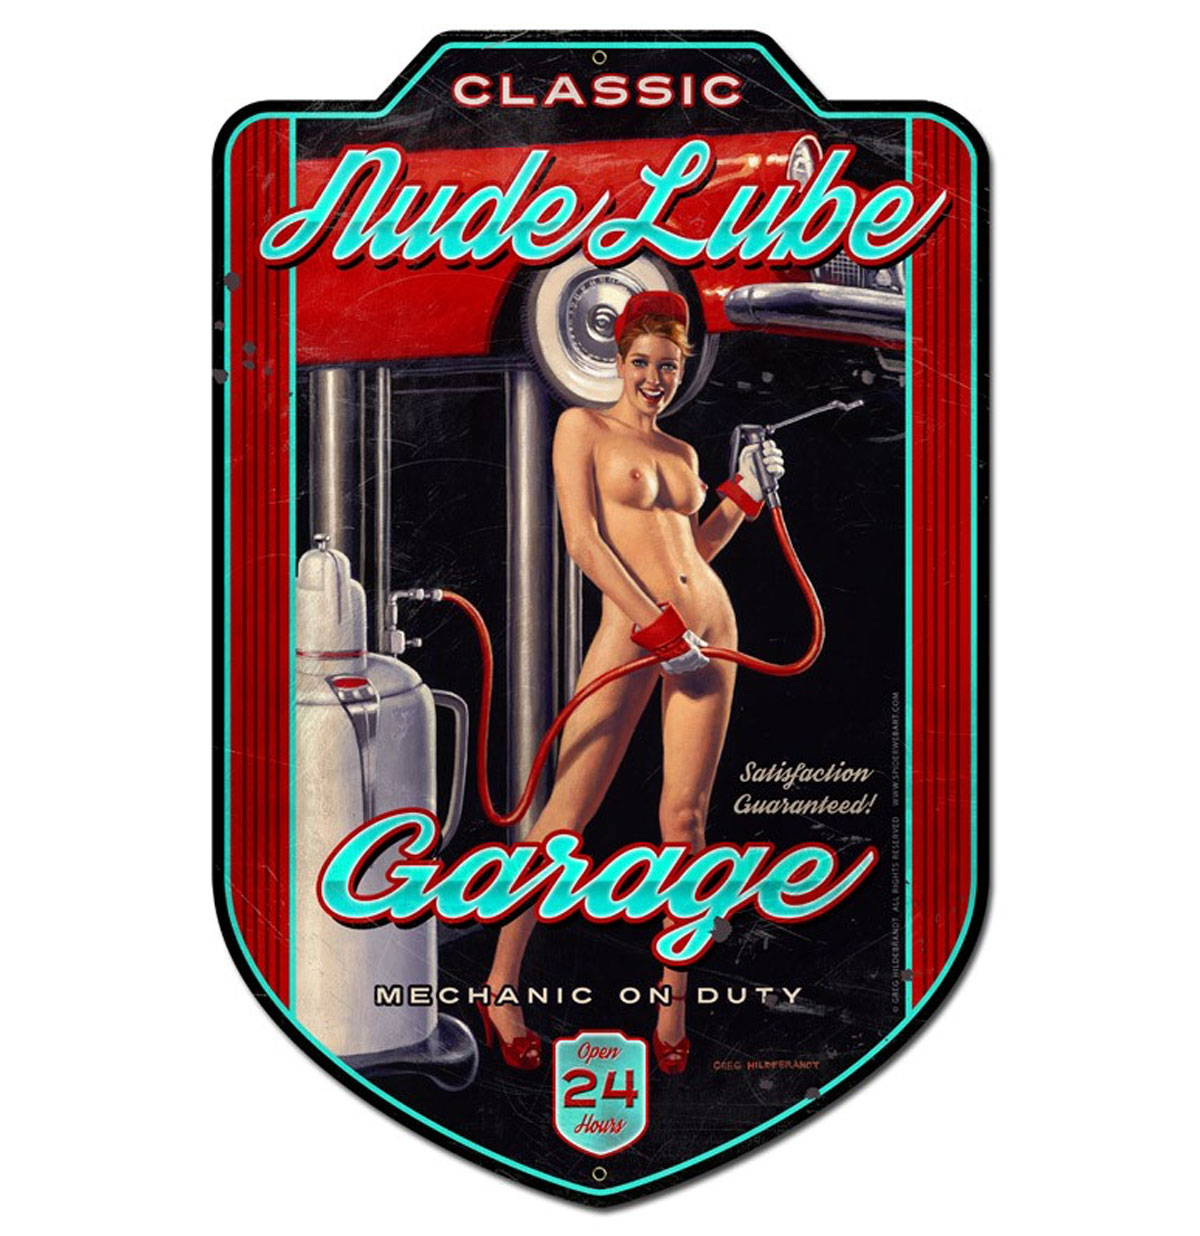 Nude Lube Garage - Mechanic on Duty Pin-Up Zwaar Metalen Bord